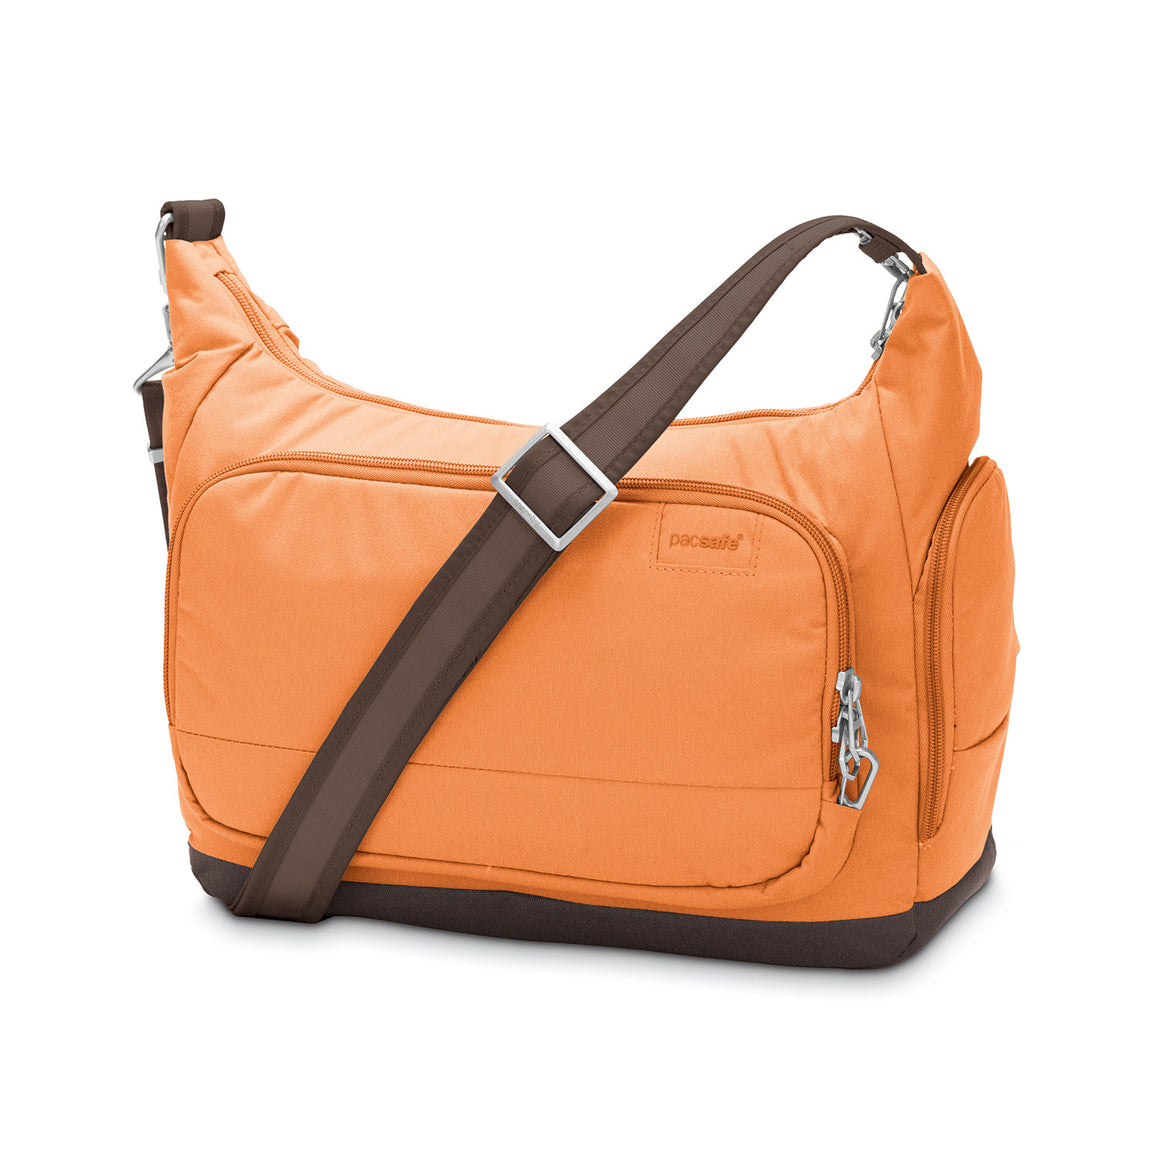 Pacsafe Citysafe LS200 Anti-Theft Shoulder Bag with Tablet Pocket Apricot